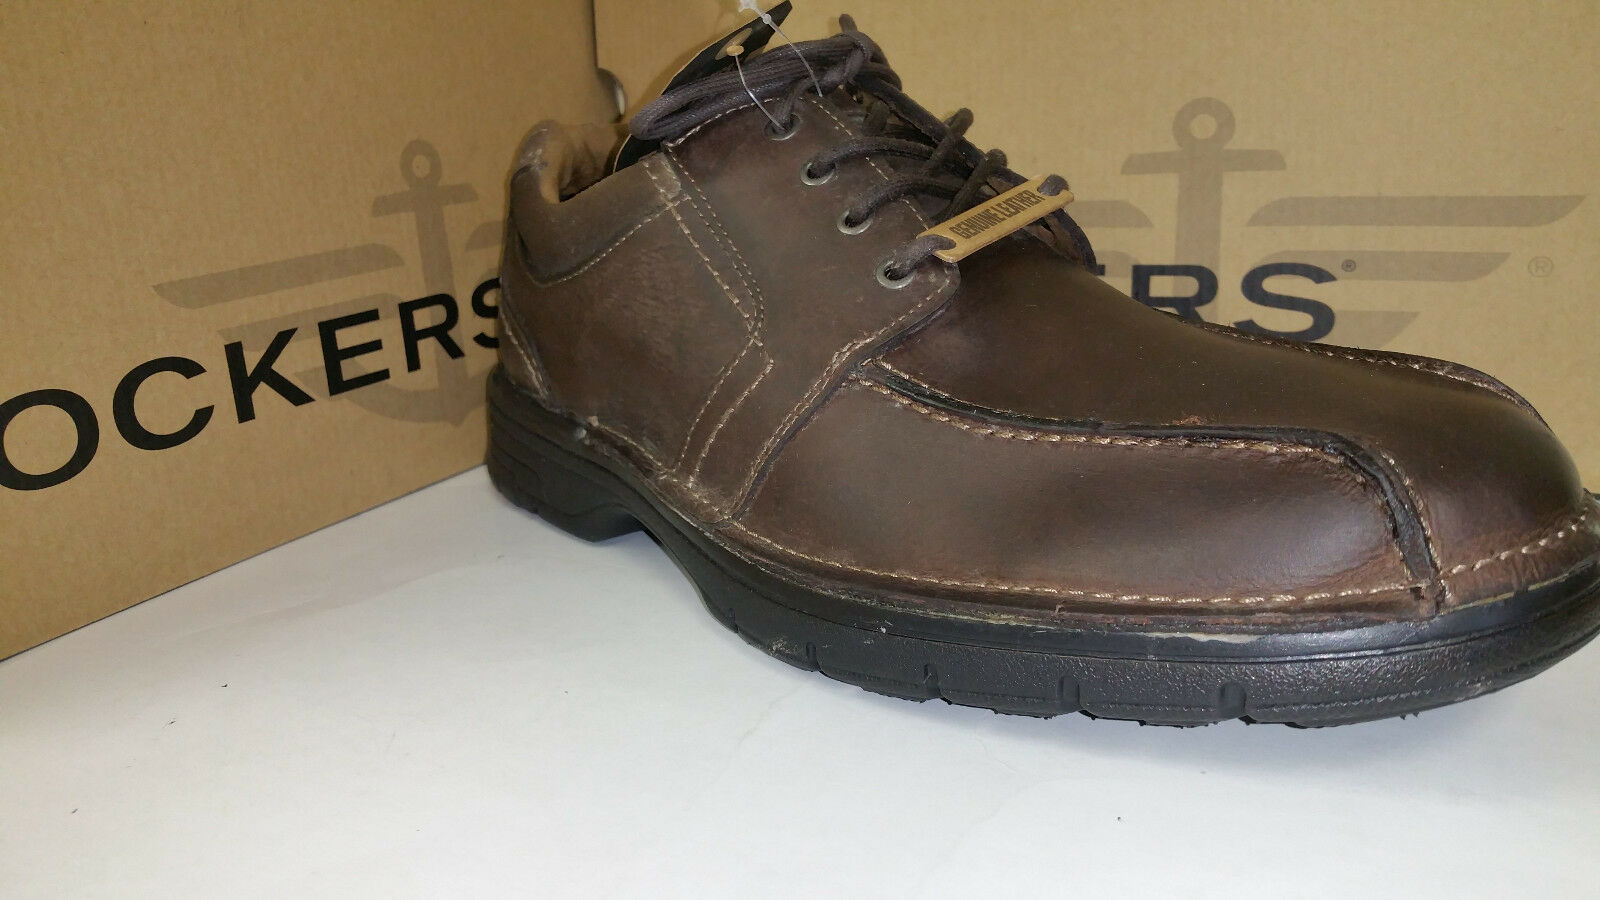 Scarpe casual da uomo  Dockers Lawtner Light Weight Chocolate Leather Casual Shoes size 7-12